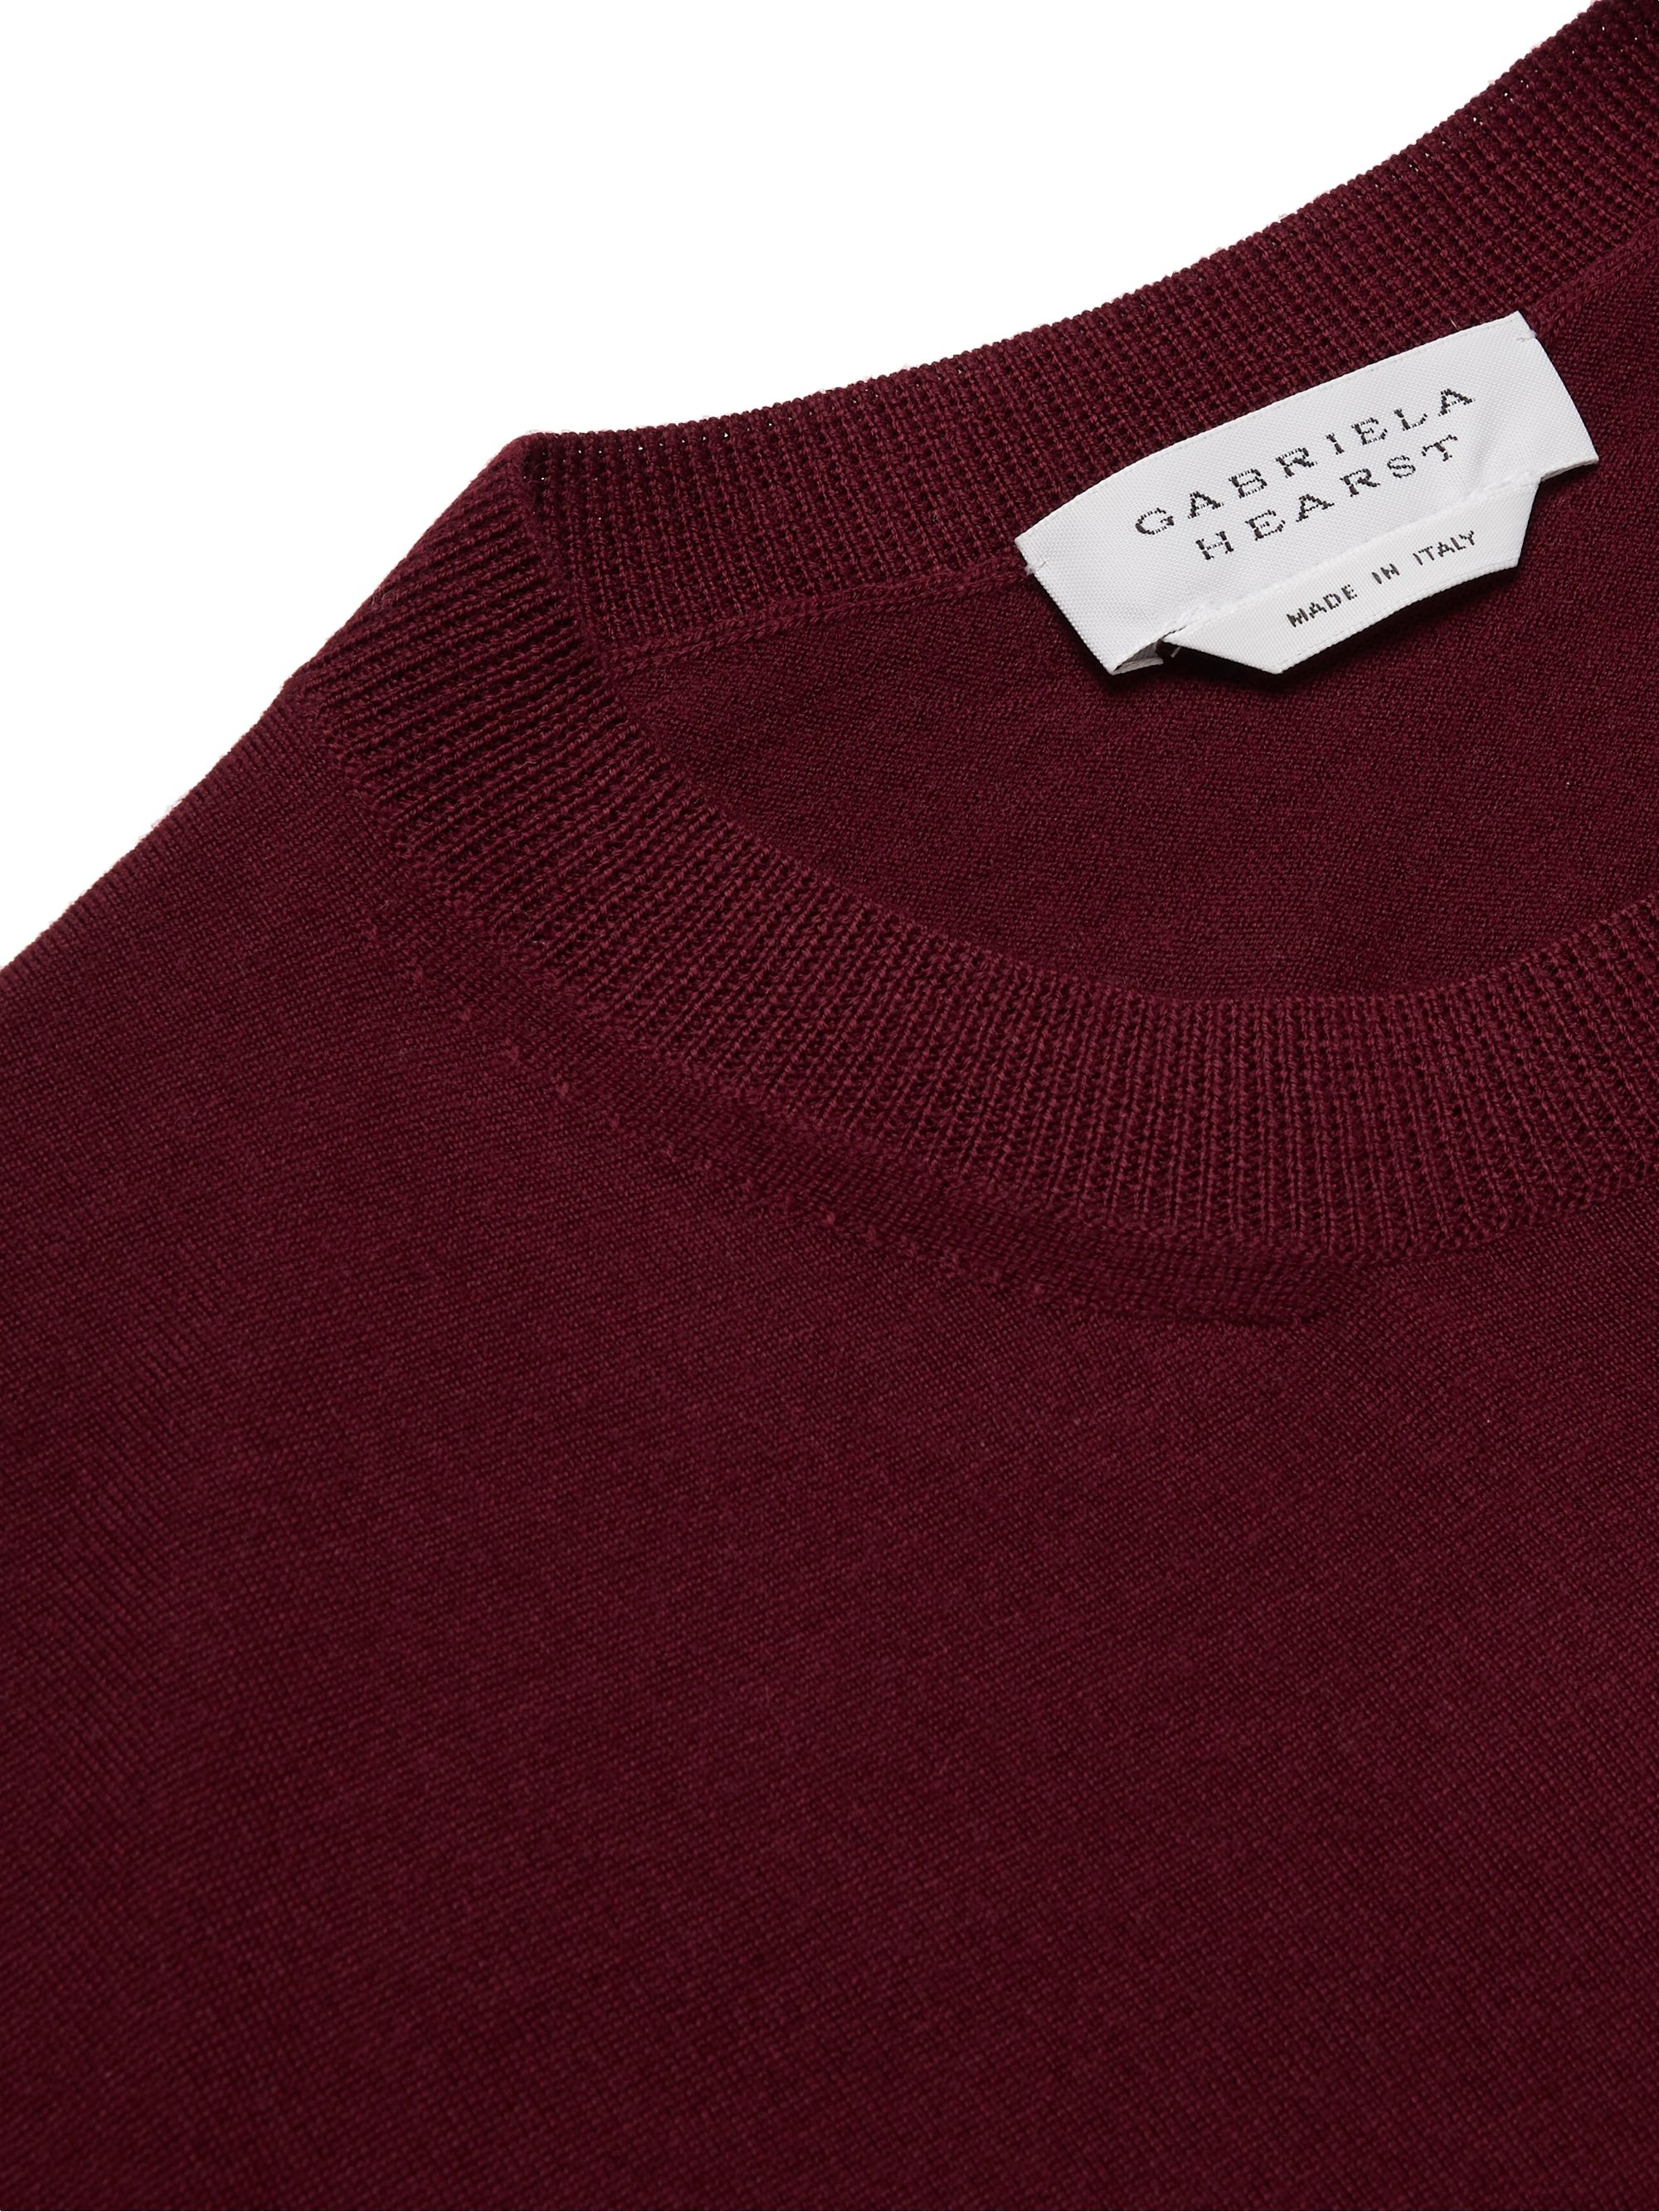 Burgundy Palco Slim-fit Virgin Wool Sweater | Gabriela Hearst